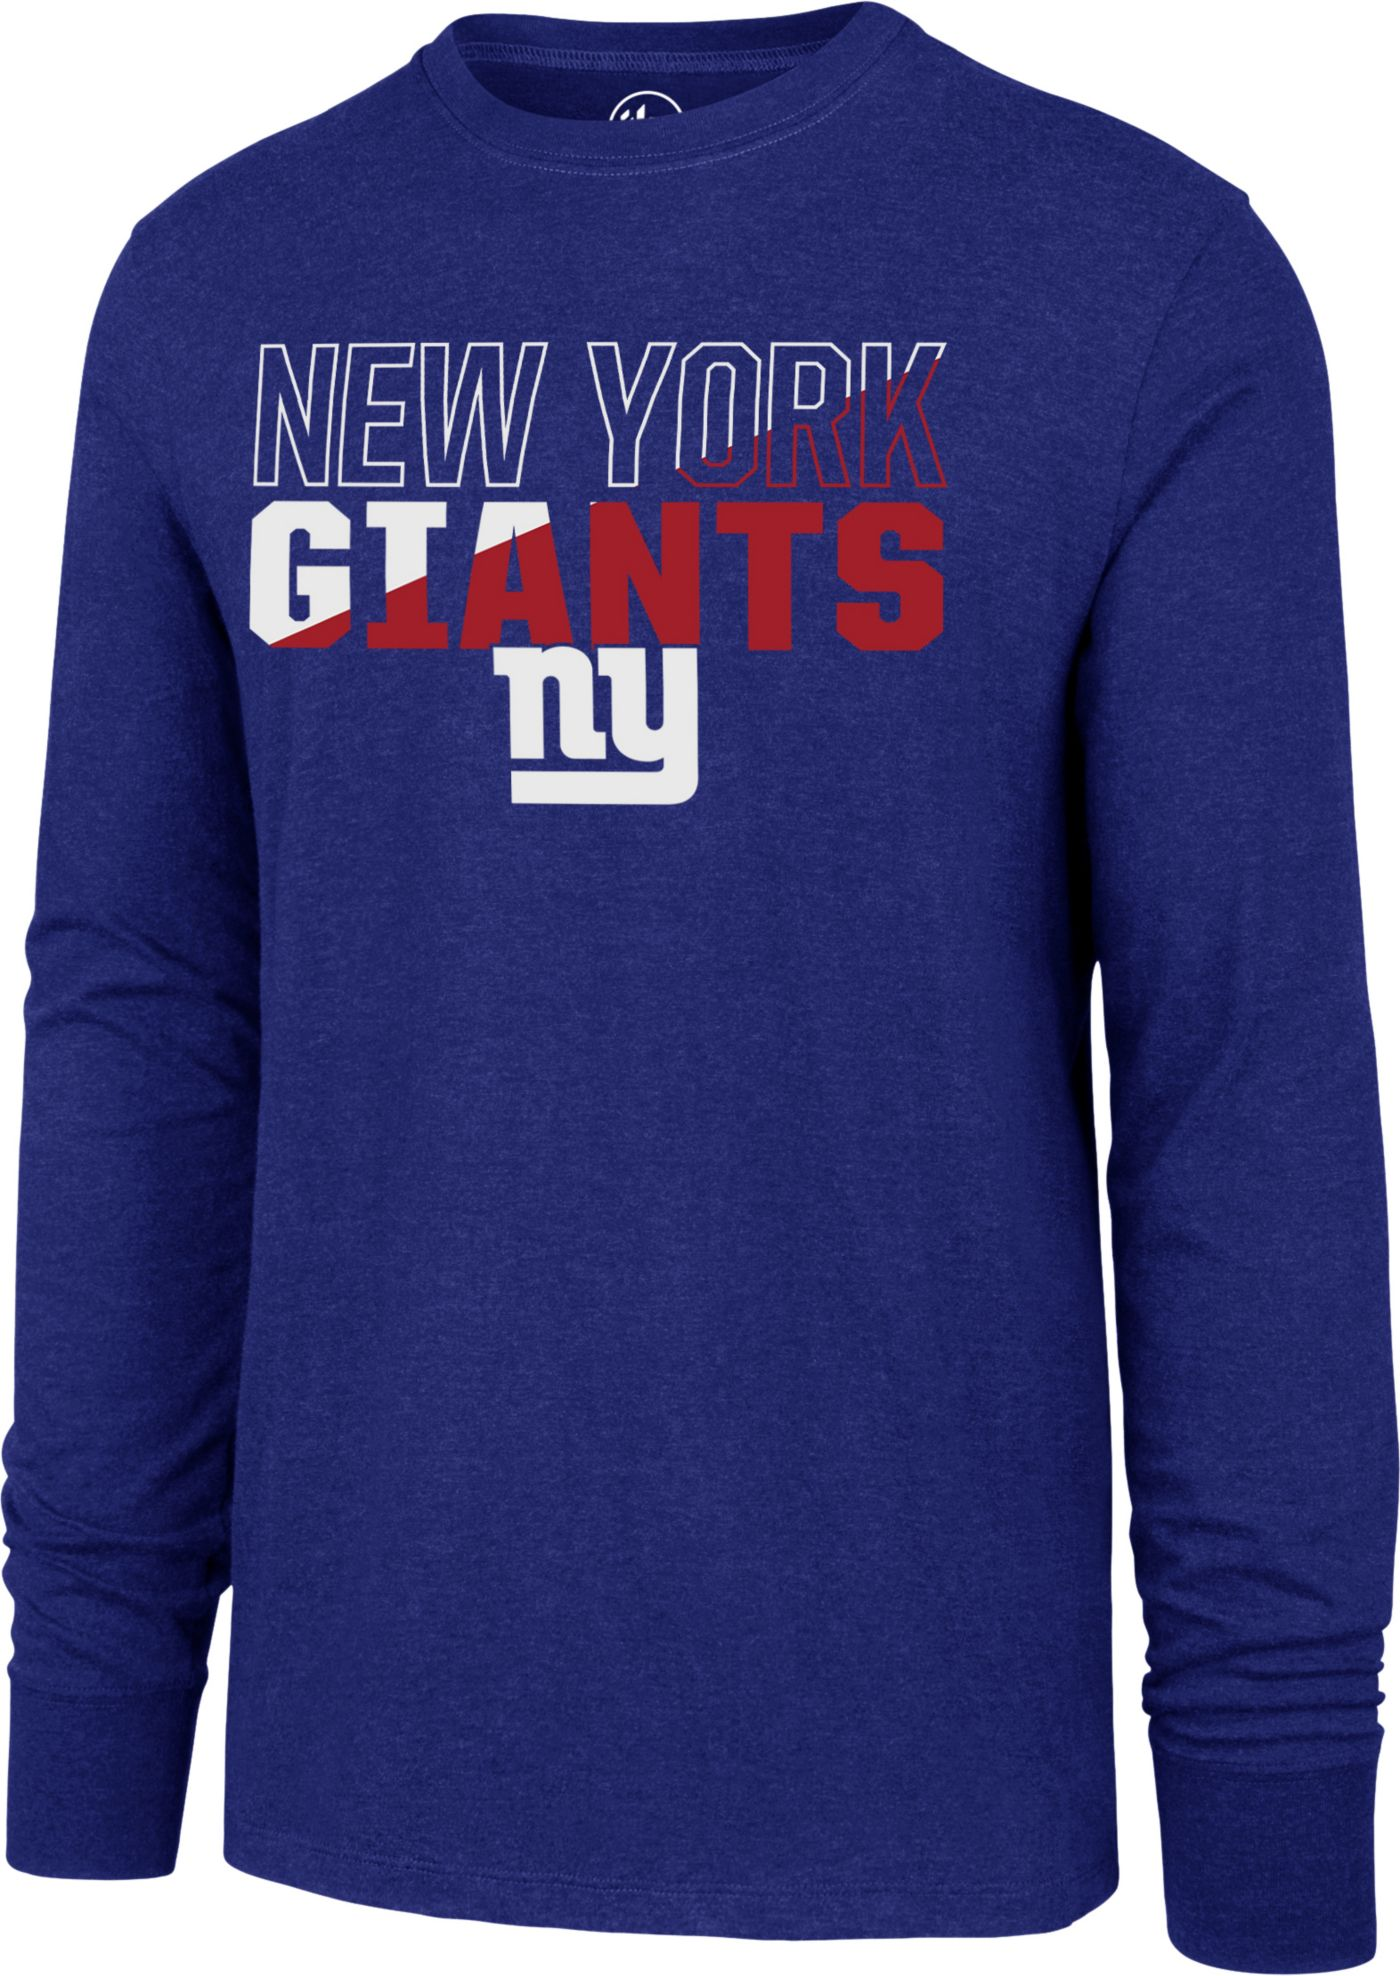 '47 Men's New York Giants Club Long Sleeve Royal Shirt